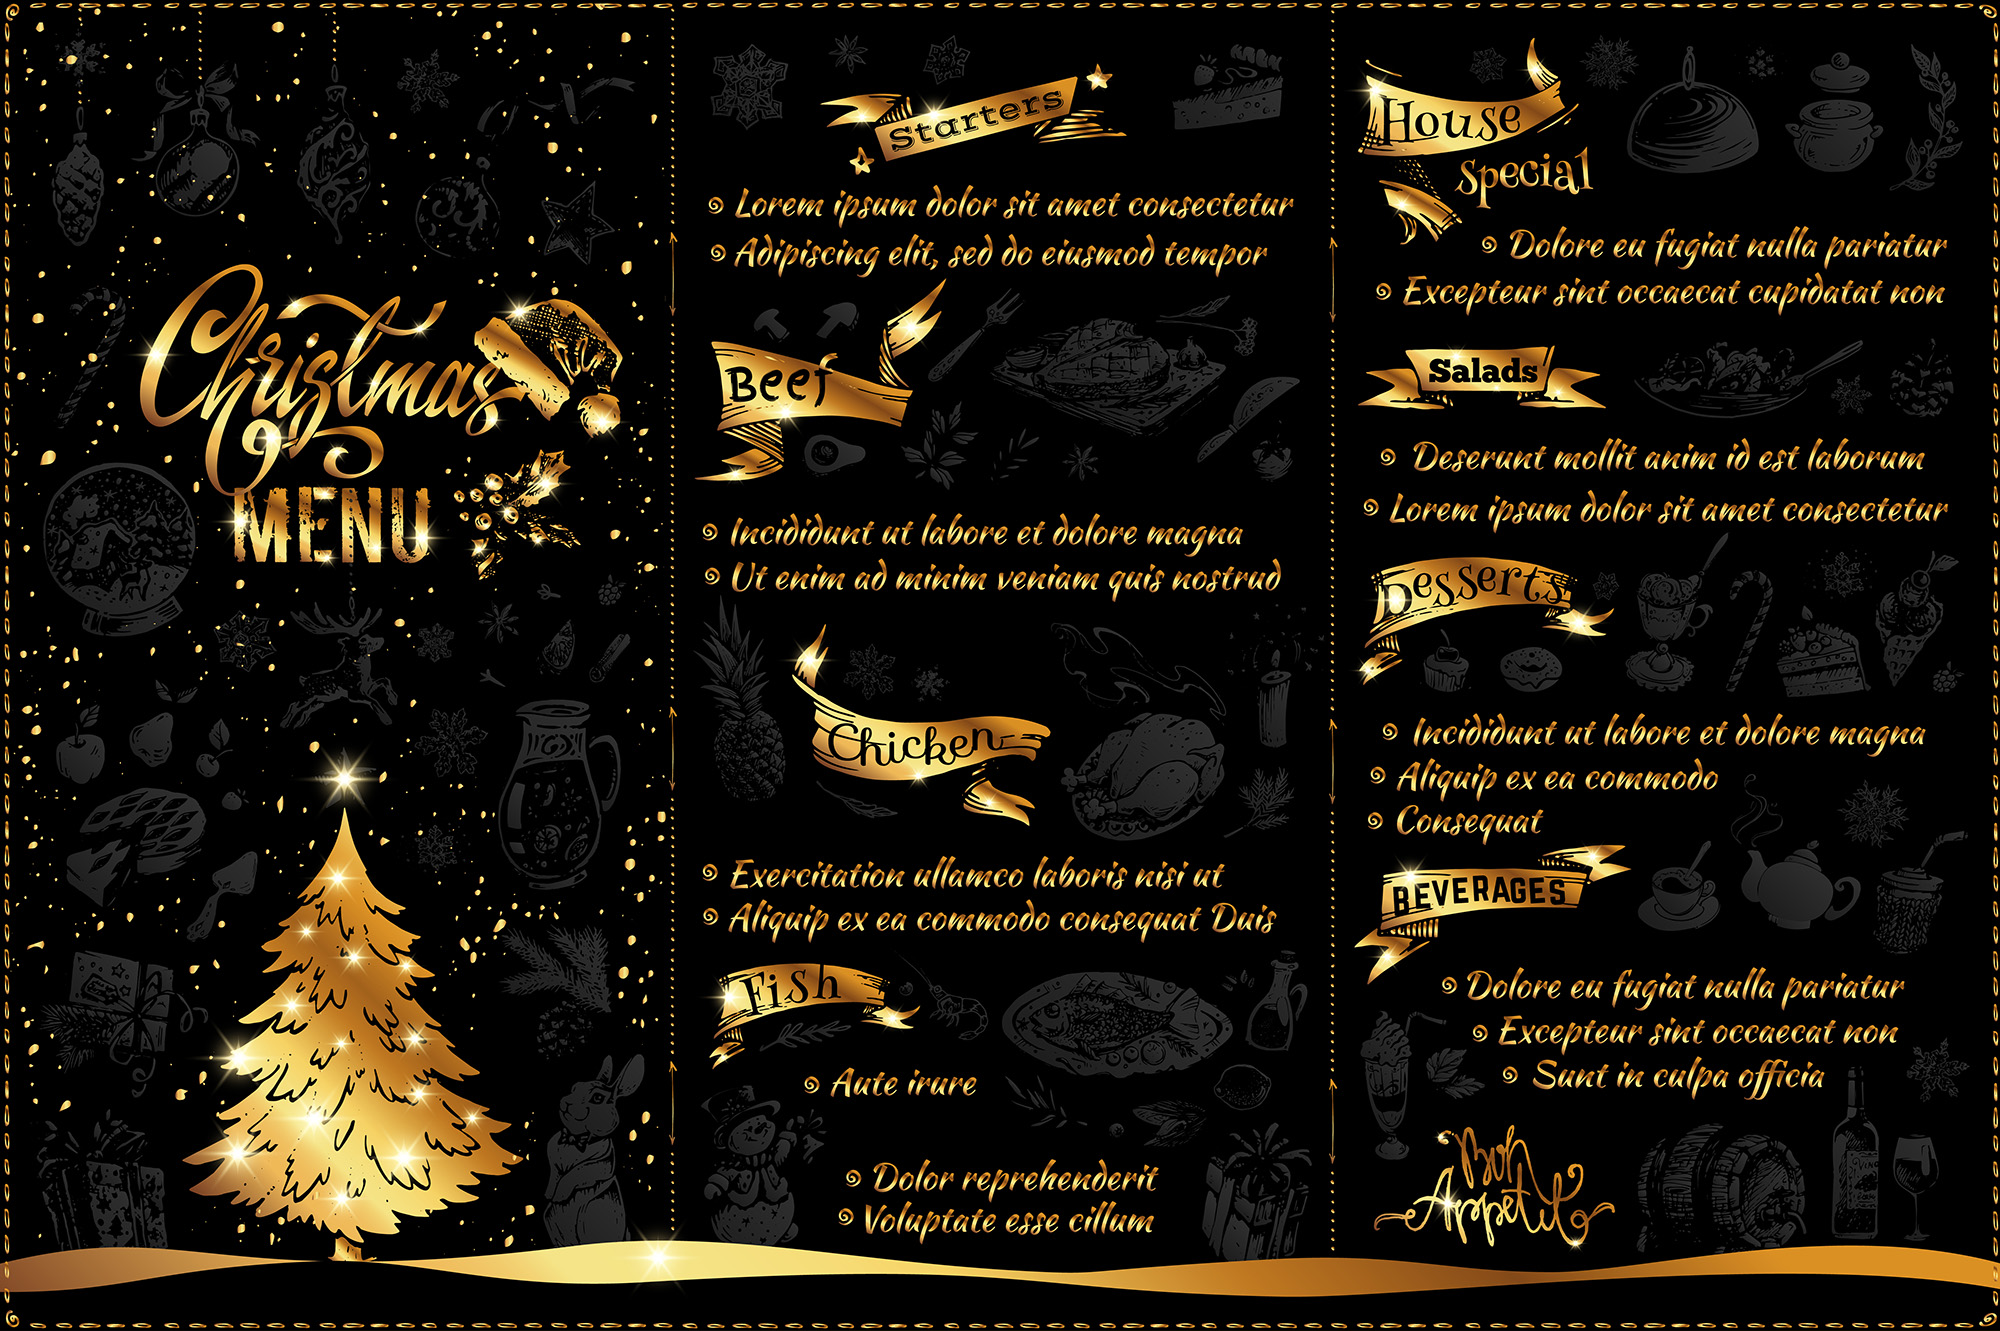 Christmas Menu Design. Hand Drawn Illustrations example image 2